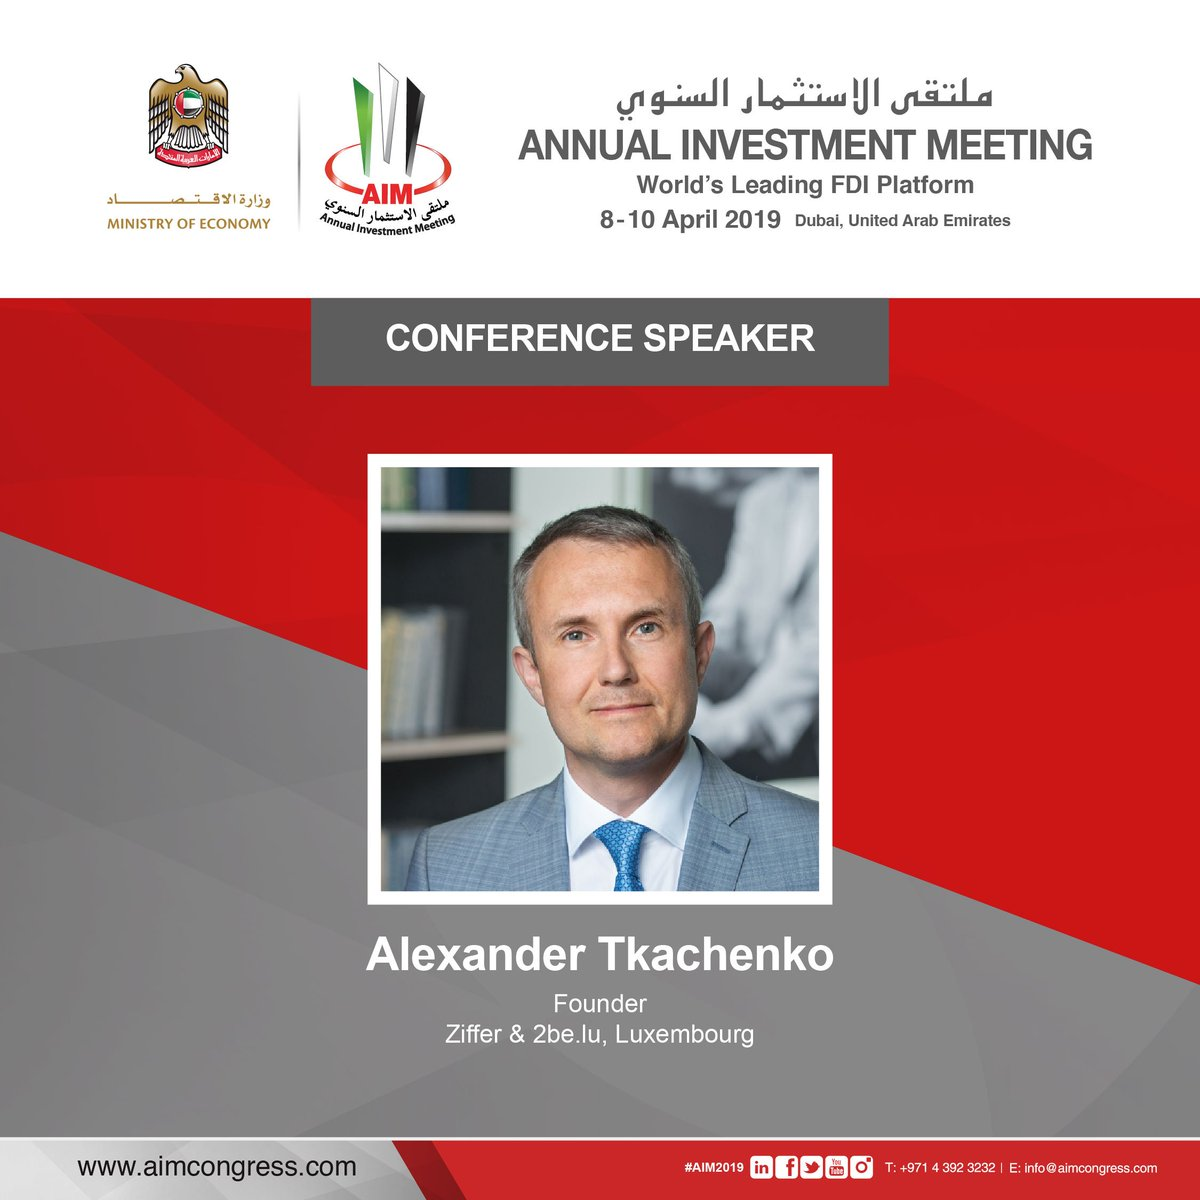 It's a privilege to be having our CEO and Founder, Alexander Tkachenko, speak during the 2019 Edition of the Annual Investment Meeting in Dubai 🇦🇪 together with 72 other speakers!  To attend the event, register at: https://t.co/9qhsXllqff #aimspeaker #aimconference @AIM_Congress